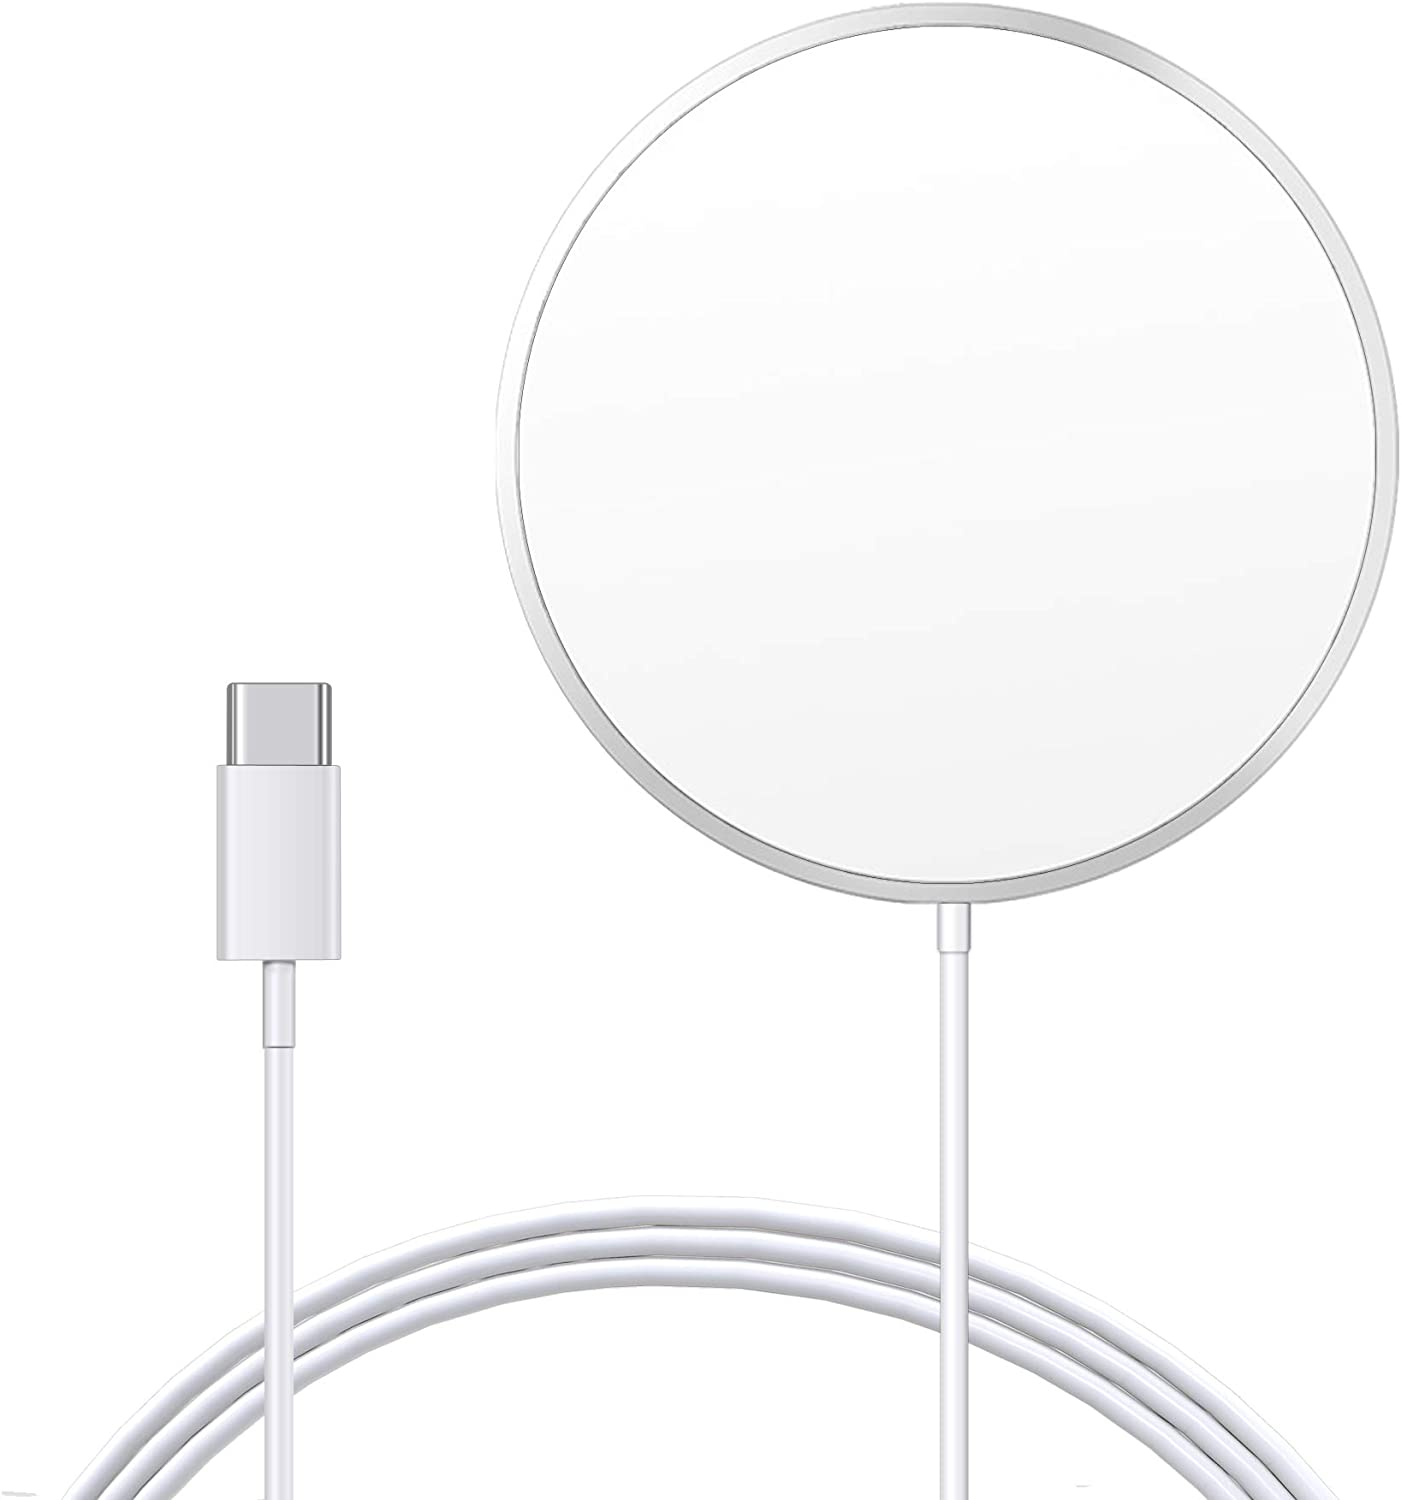 ZEROLEMON Magnet Wireless Charger, Compatible with Mag-Safe Charger, [10ft] Fast Wireless Charging Pad for iPhone 12 Mini/ 12/12 Pro/ 12 Pro Max/AirPods Pro - Silver